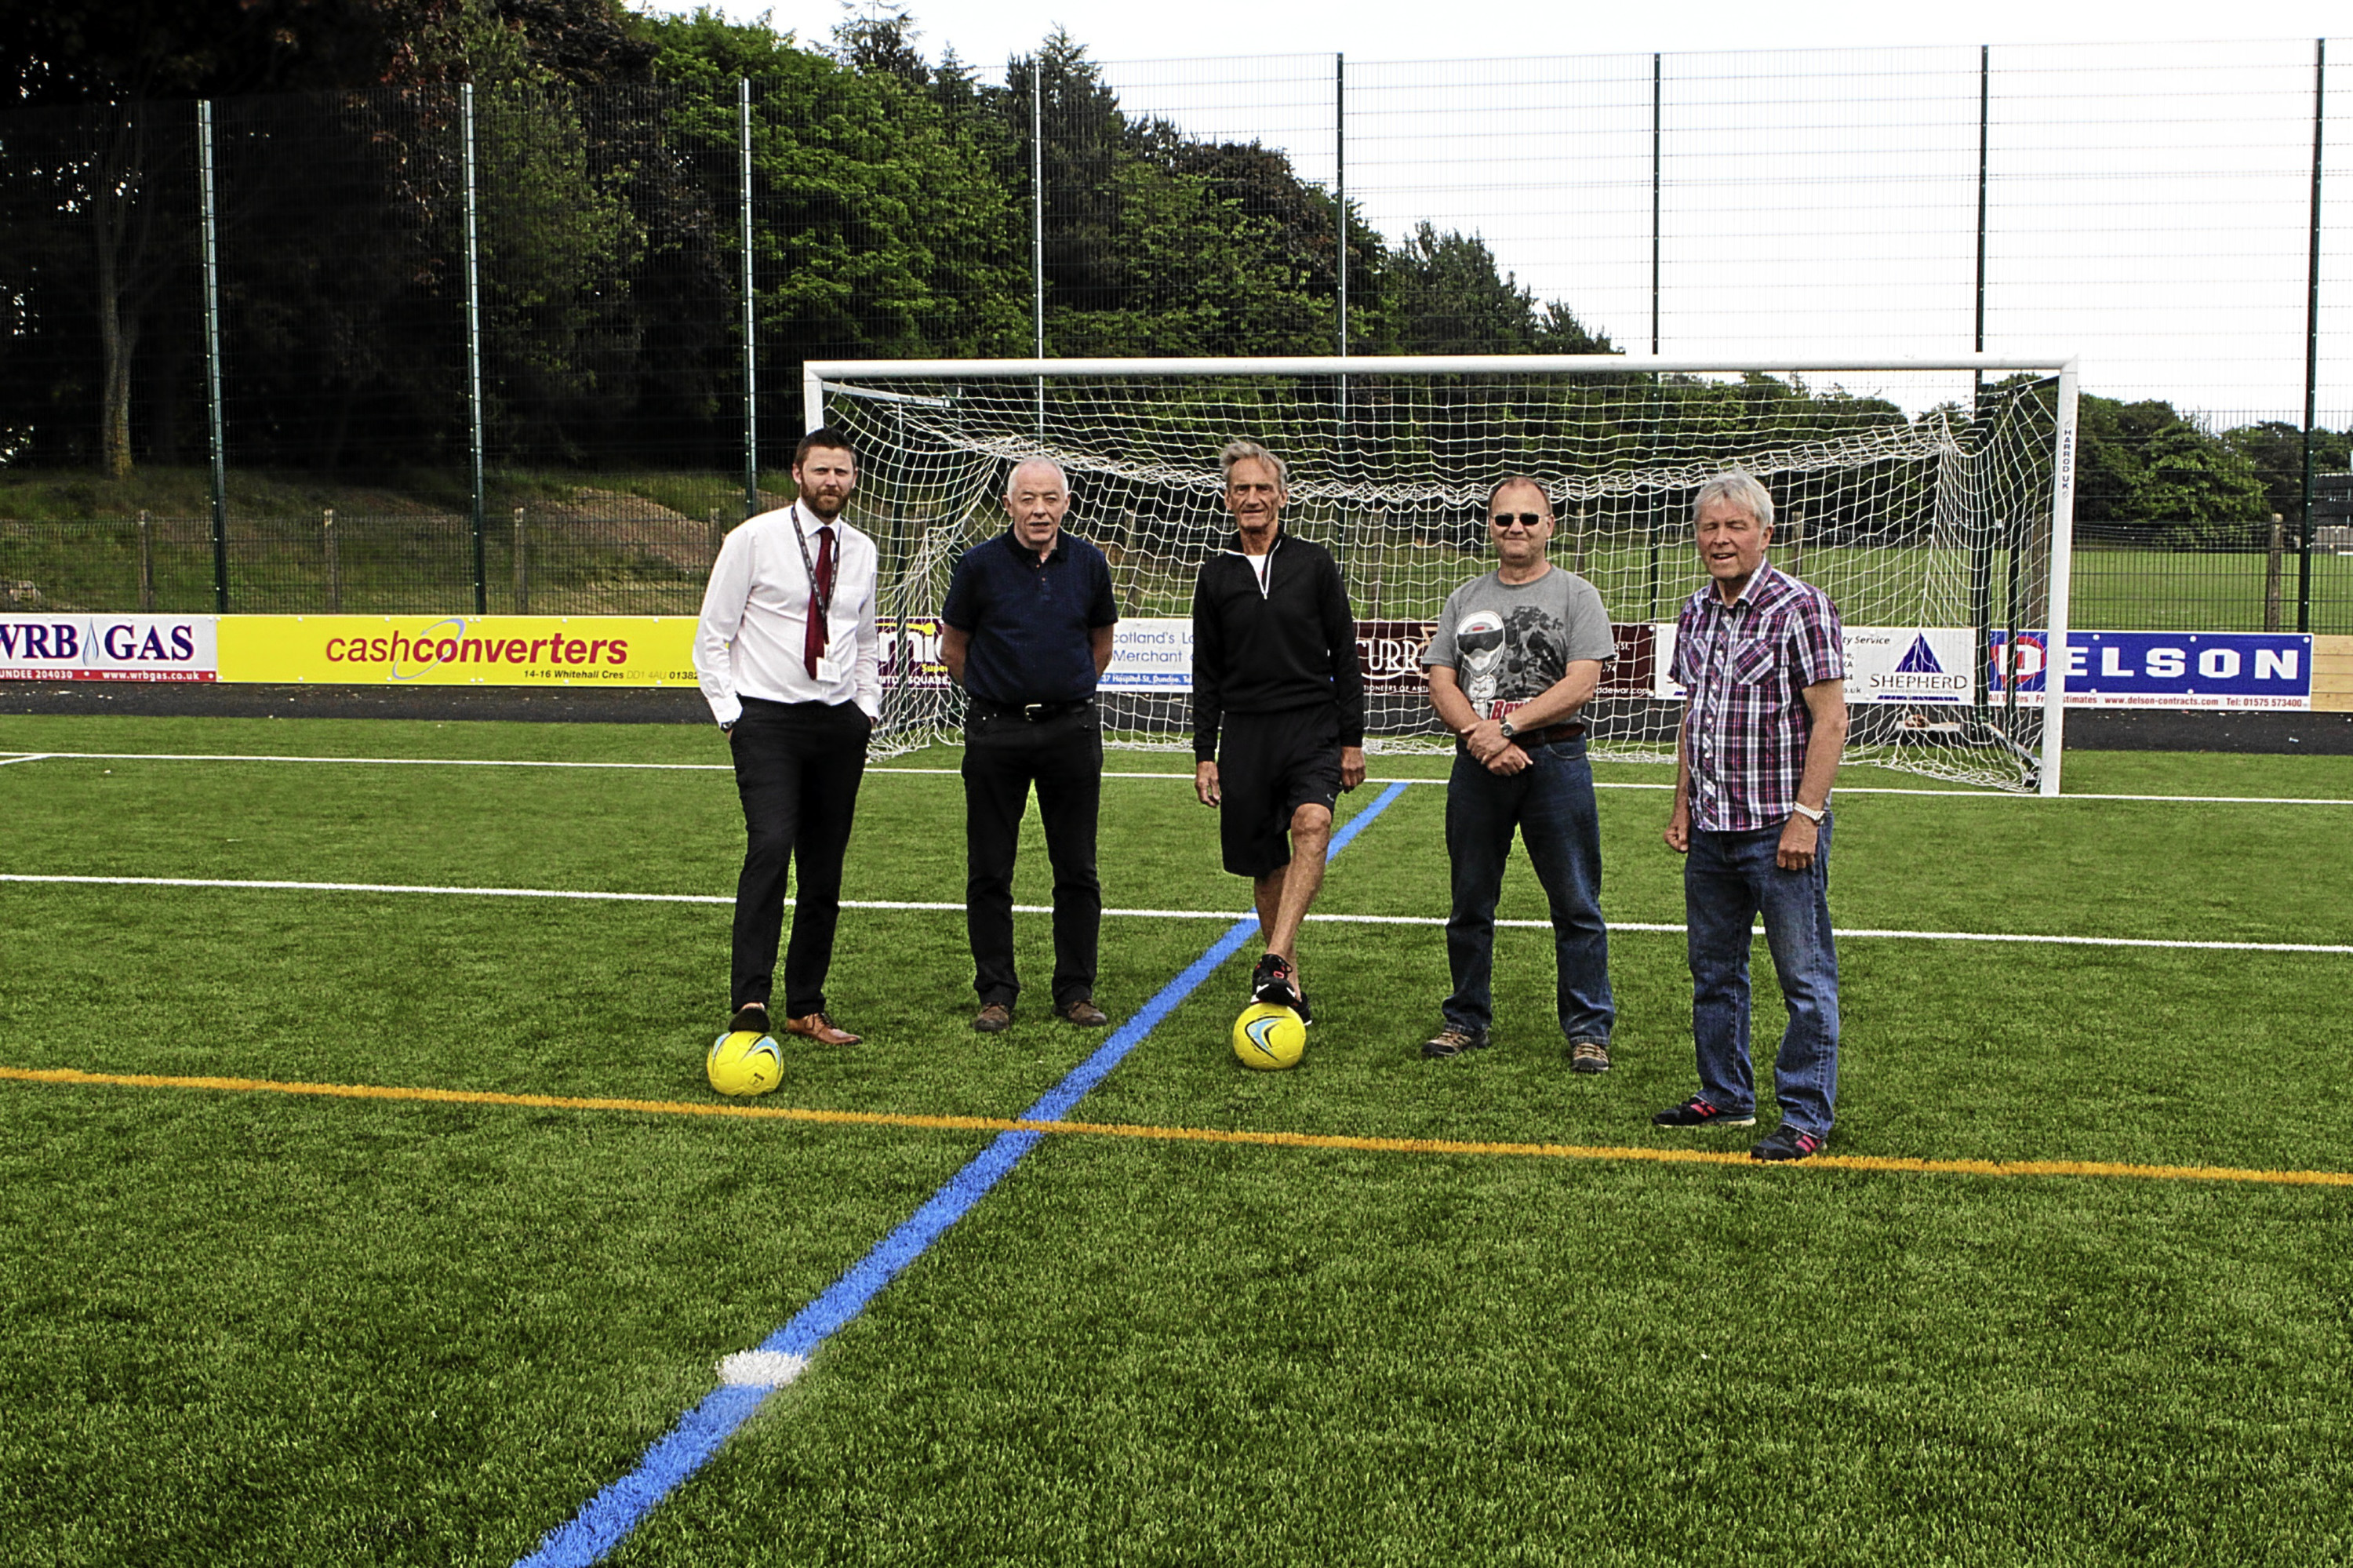 From left; Phil Smith, Jim McIlravey, Brian McNicoll, John Hodges, and George Allan